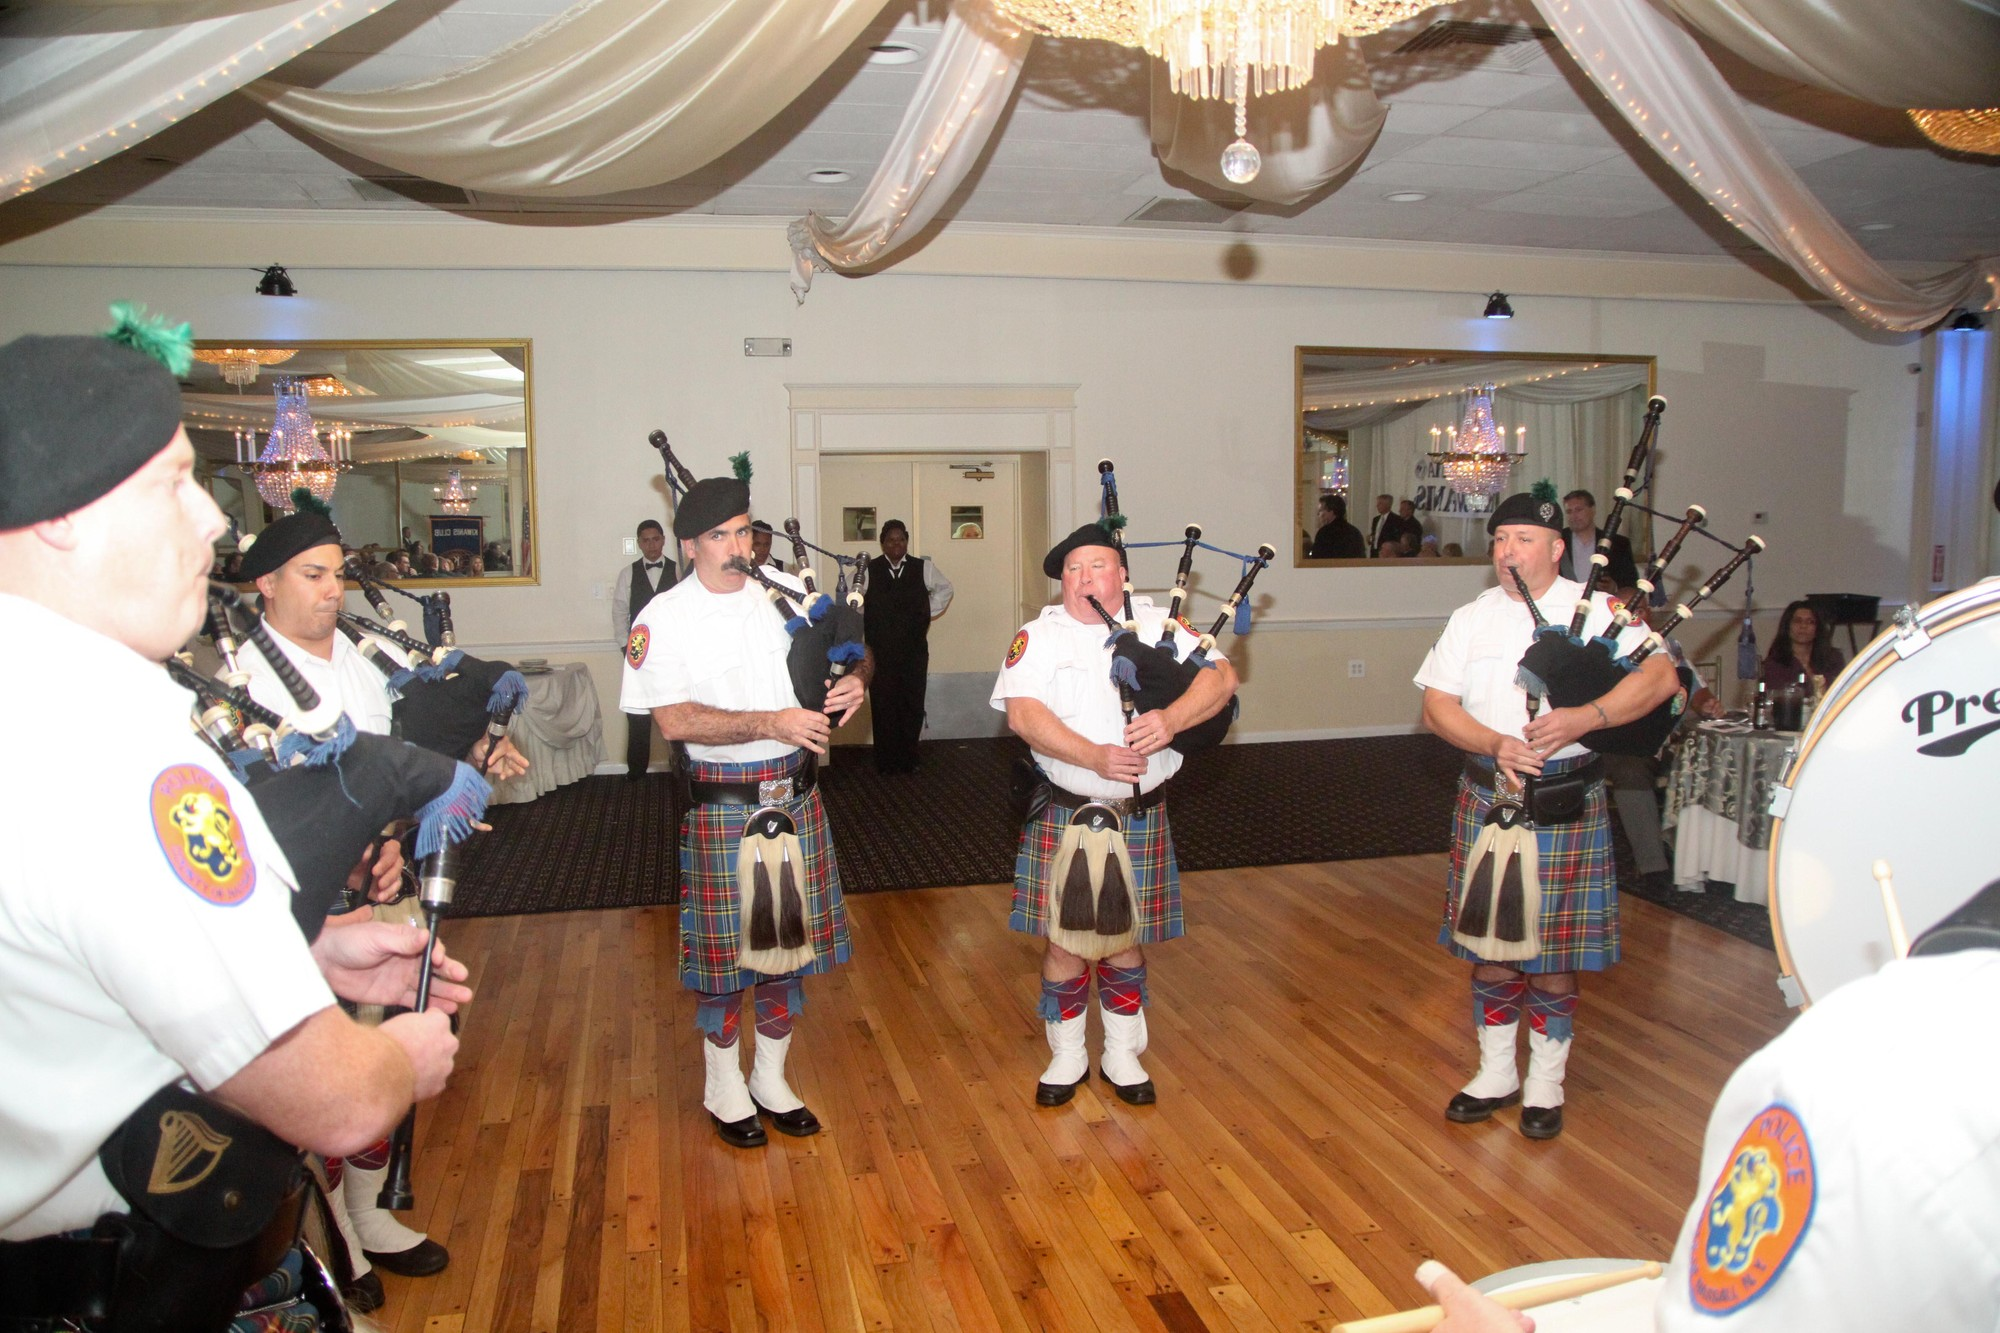 The Nassau County Police Department Pipes and Drums band performed at the dinner.